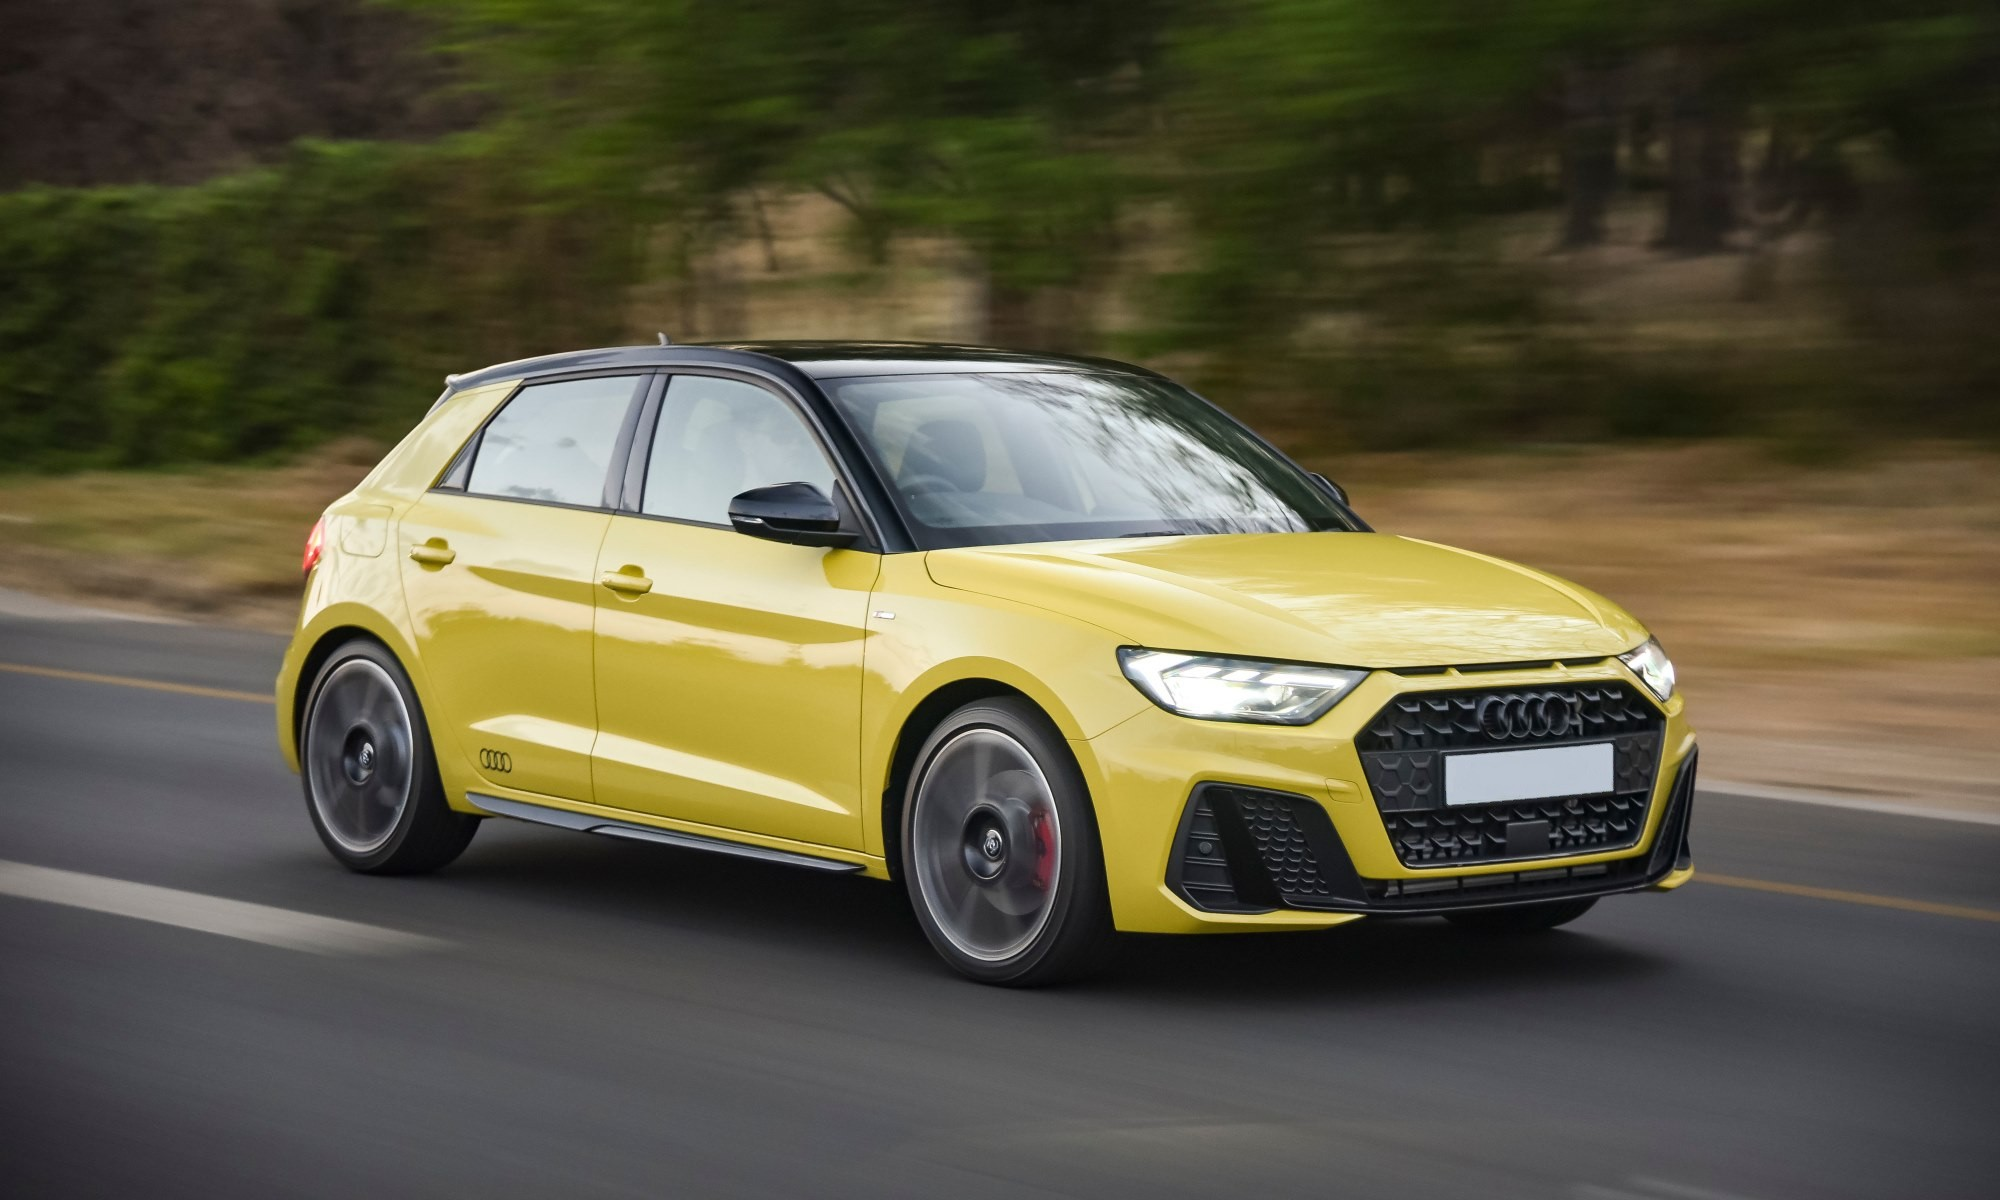 Audi A1 35 TFSI Advanced Driven